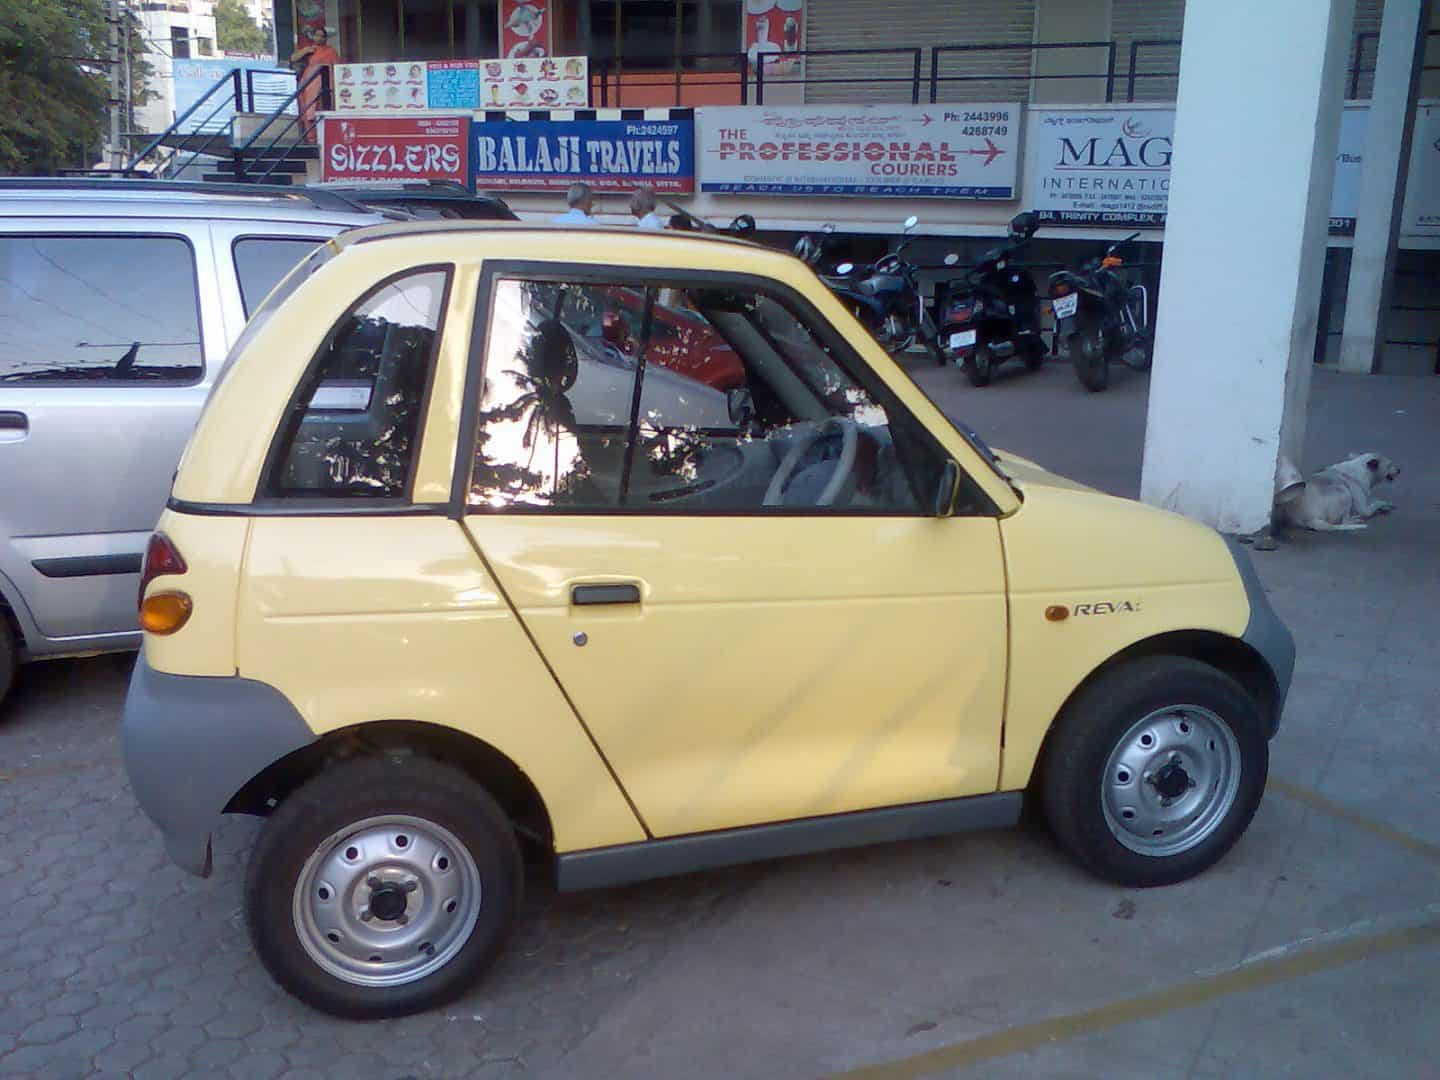 Reva - The first Electric car launched in India